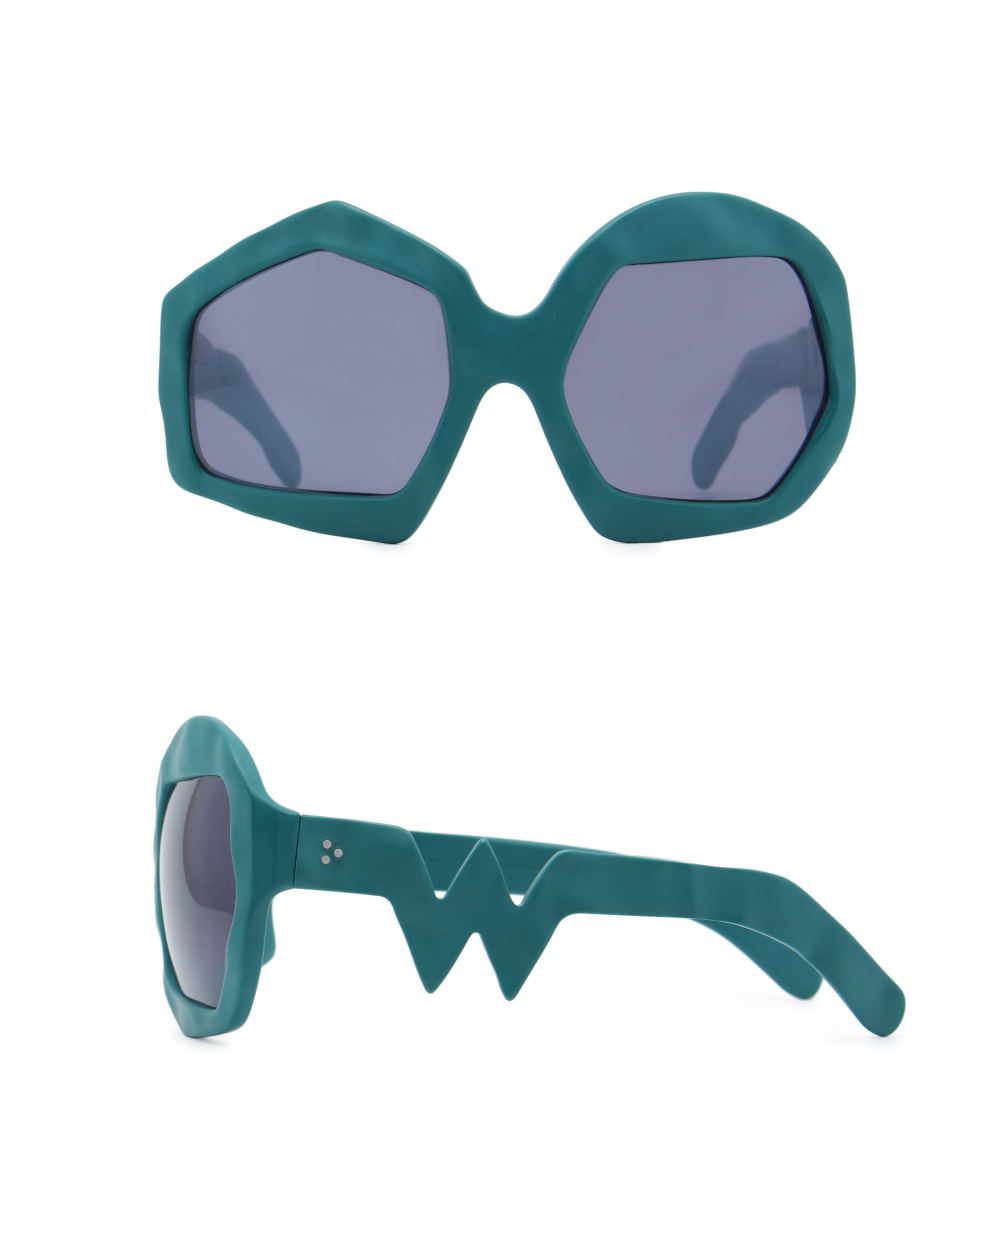 Thunder Sunglasses. Petrol Green